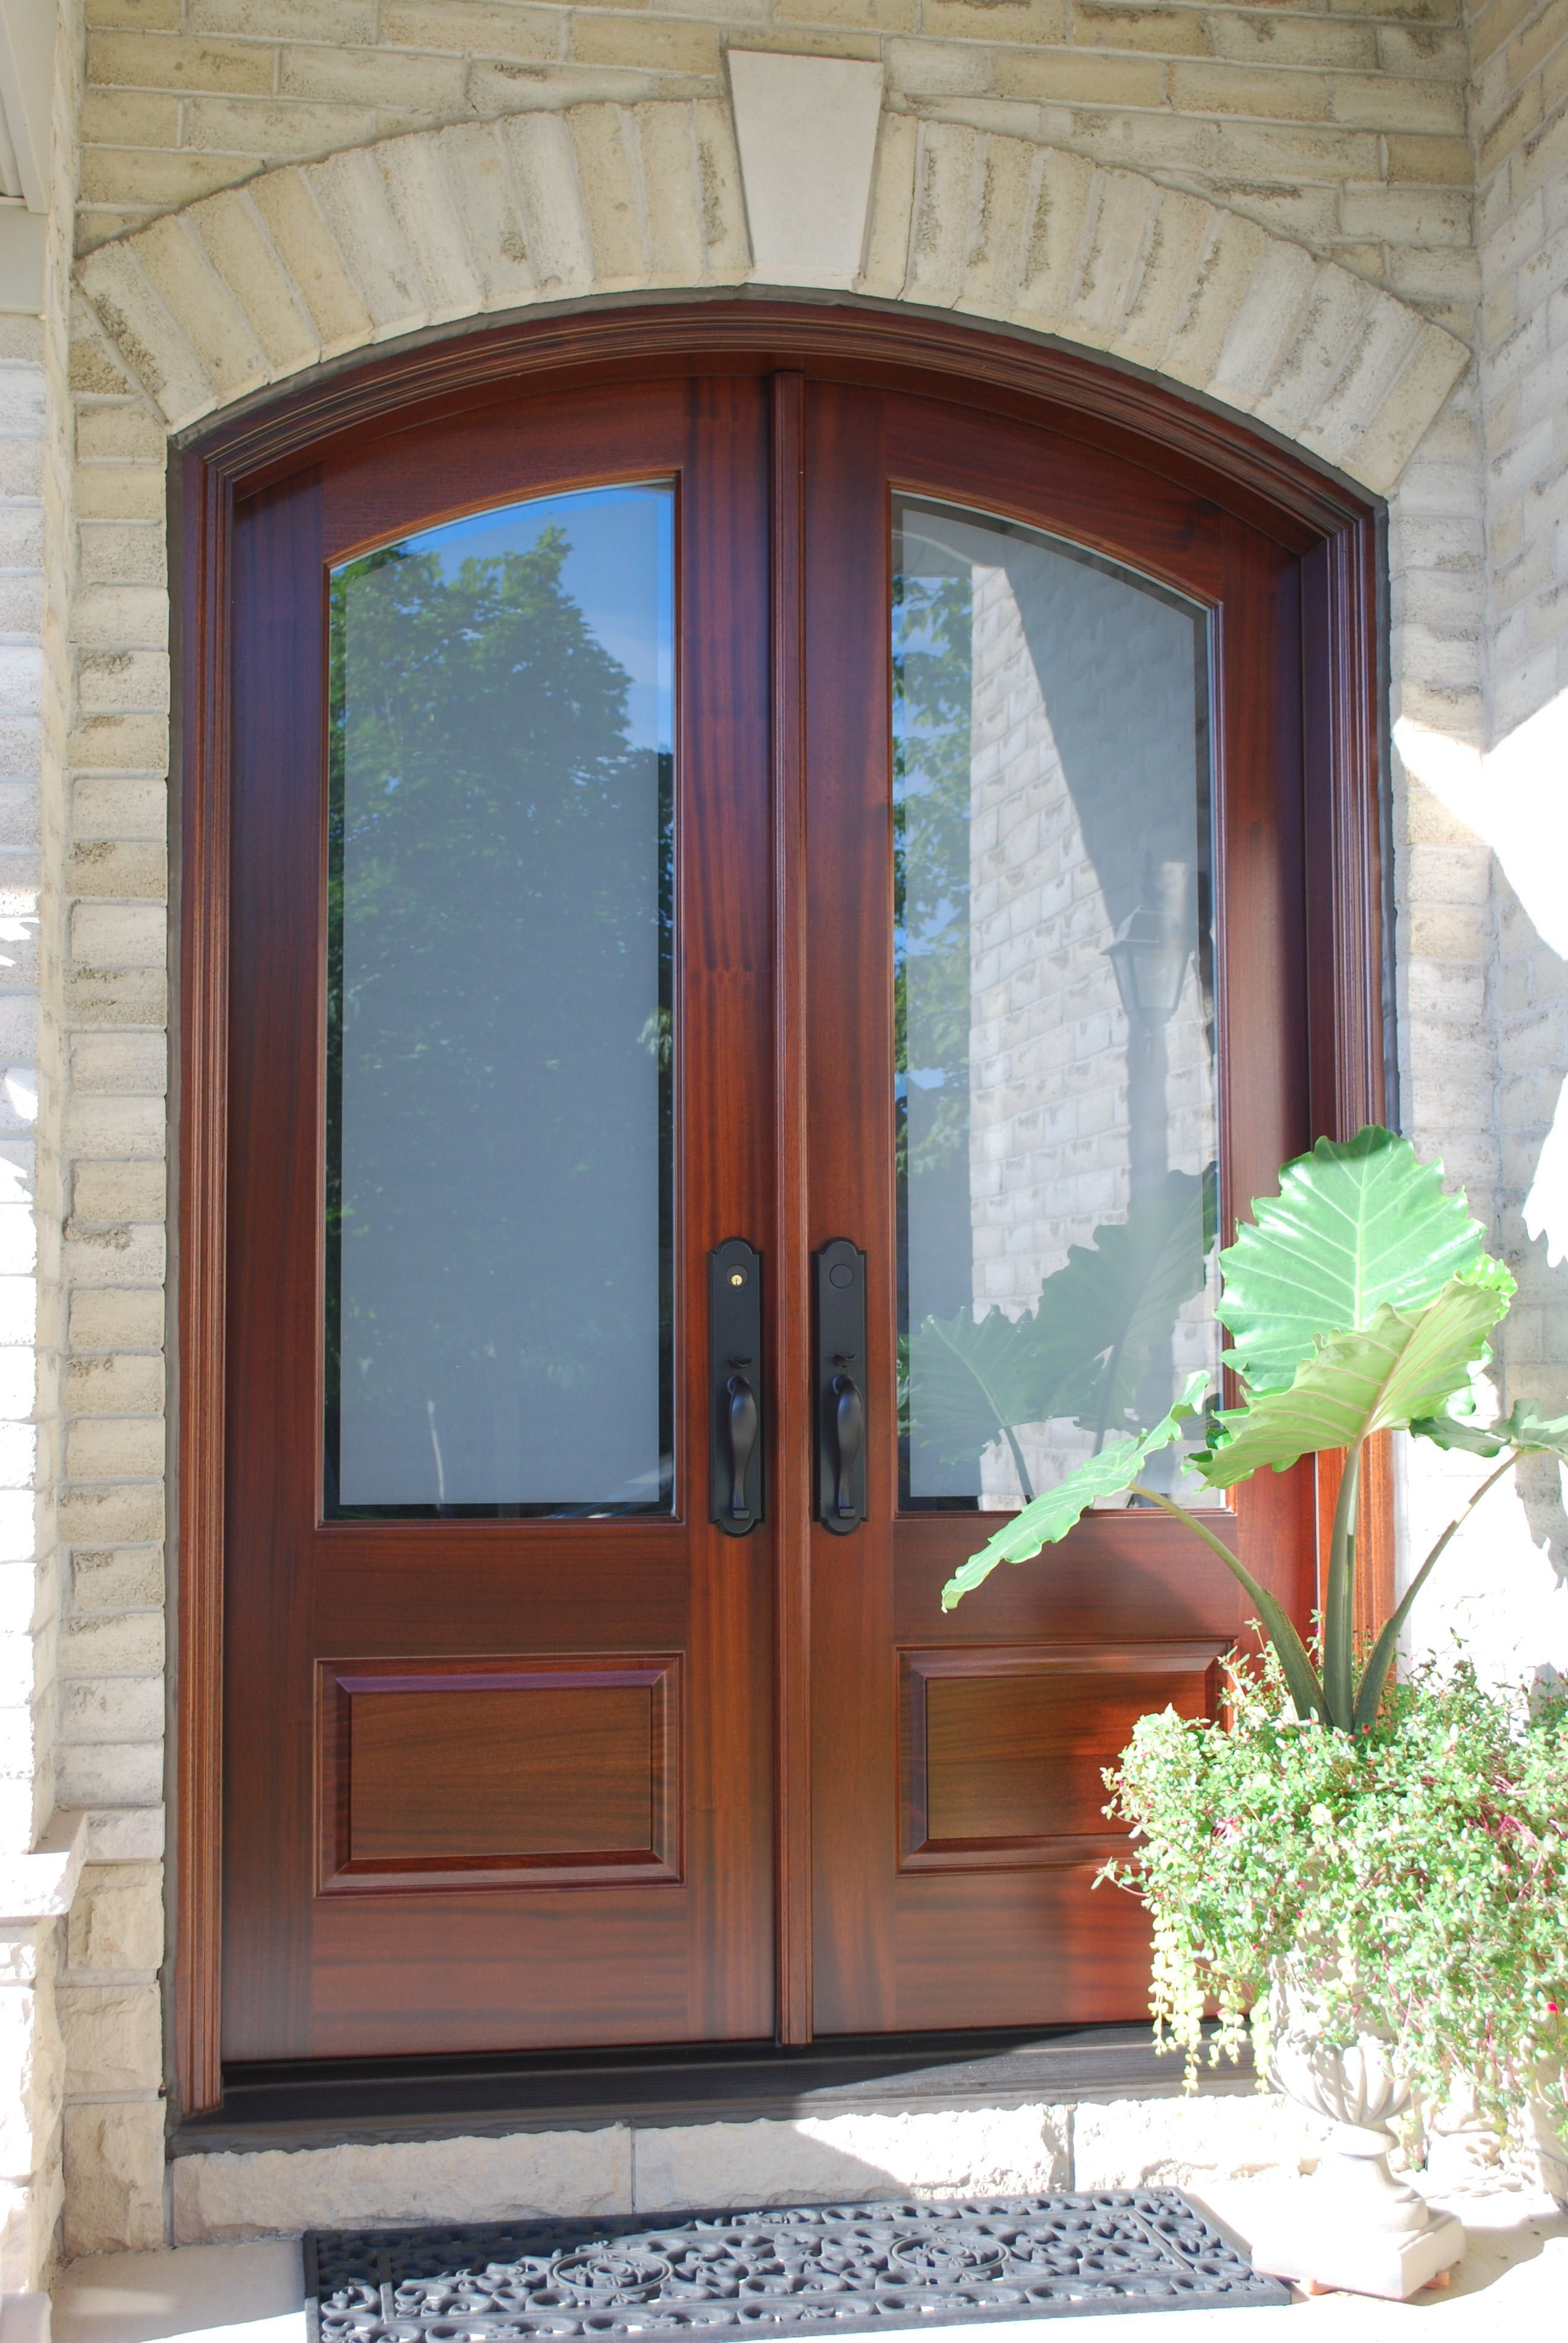 This Is A Stunning Camber Top Double Door With San Miguel Stain